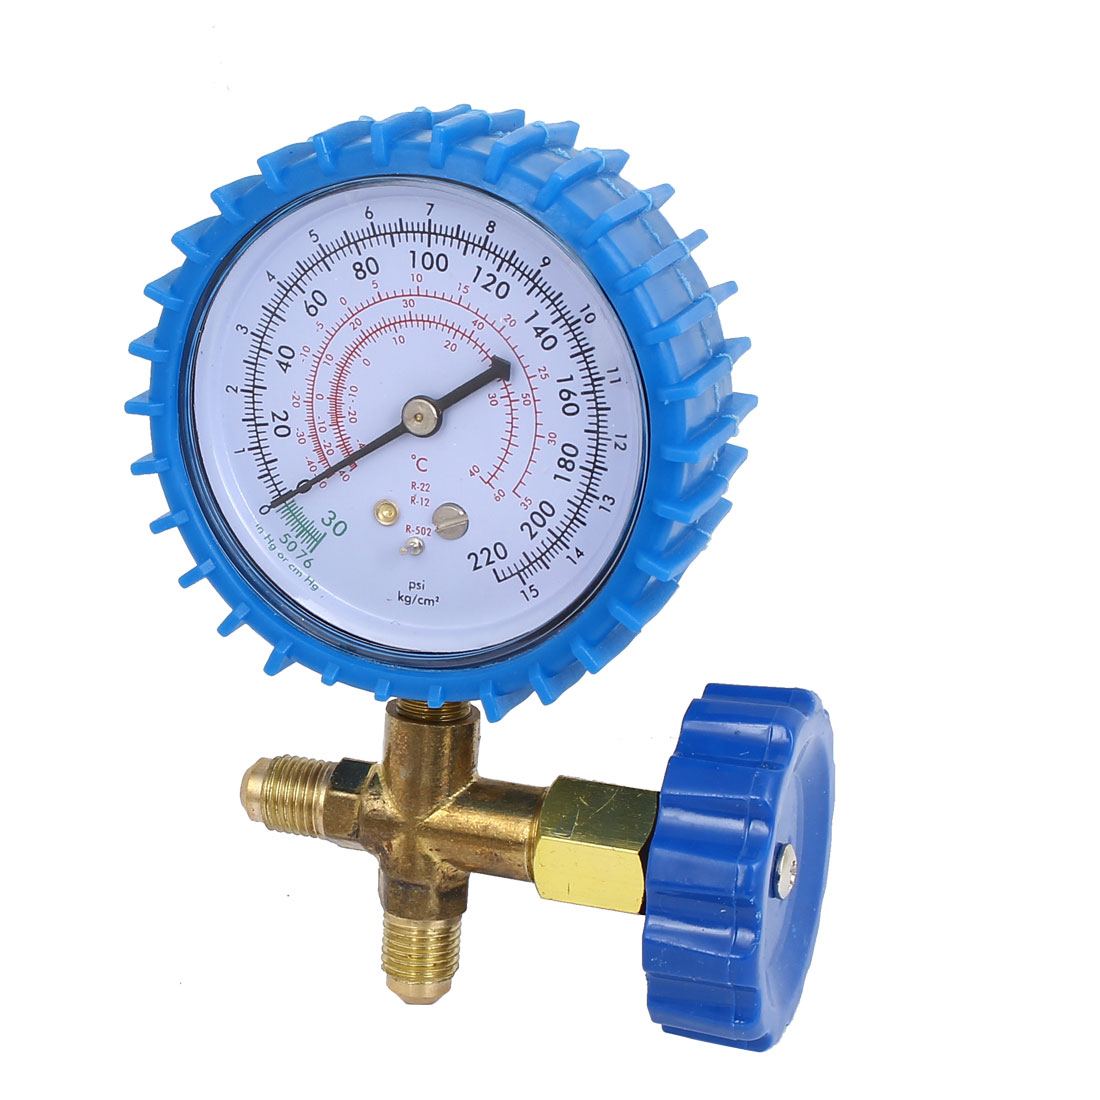 CT-466 1/4BSP Male Thread 0-220PSI Single Manifold Gauge Valve Blue for Air Conditioner